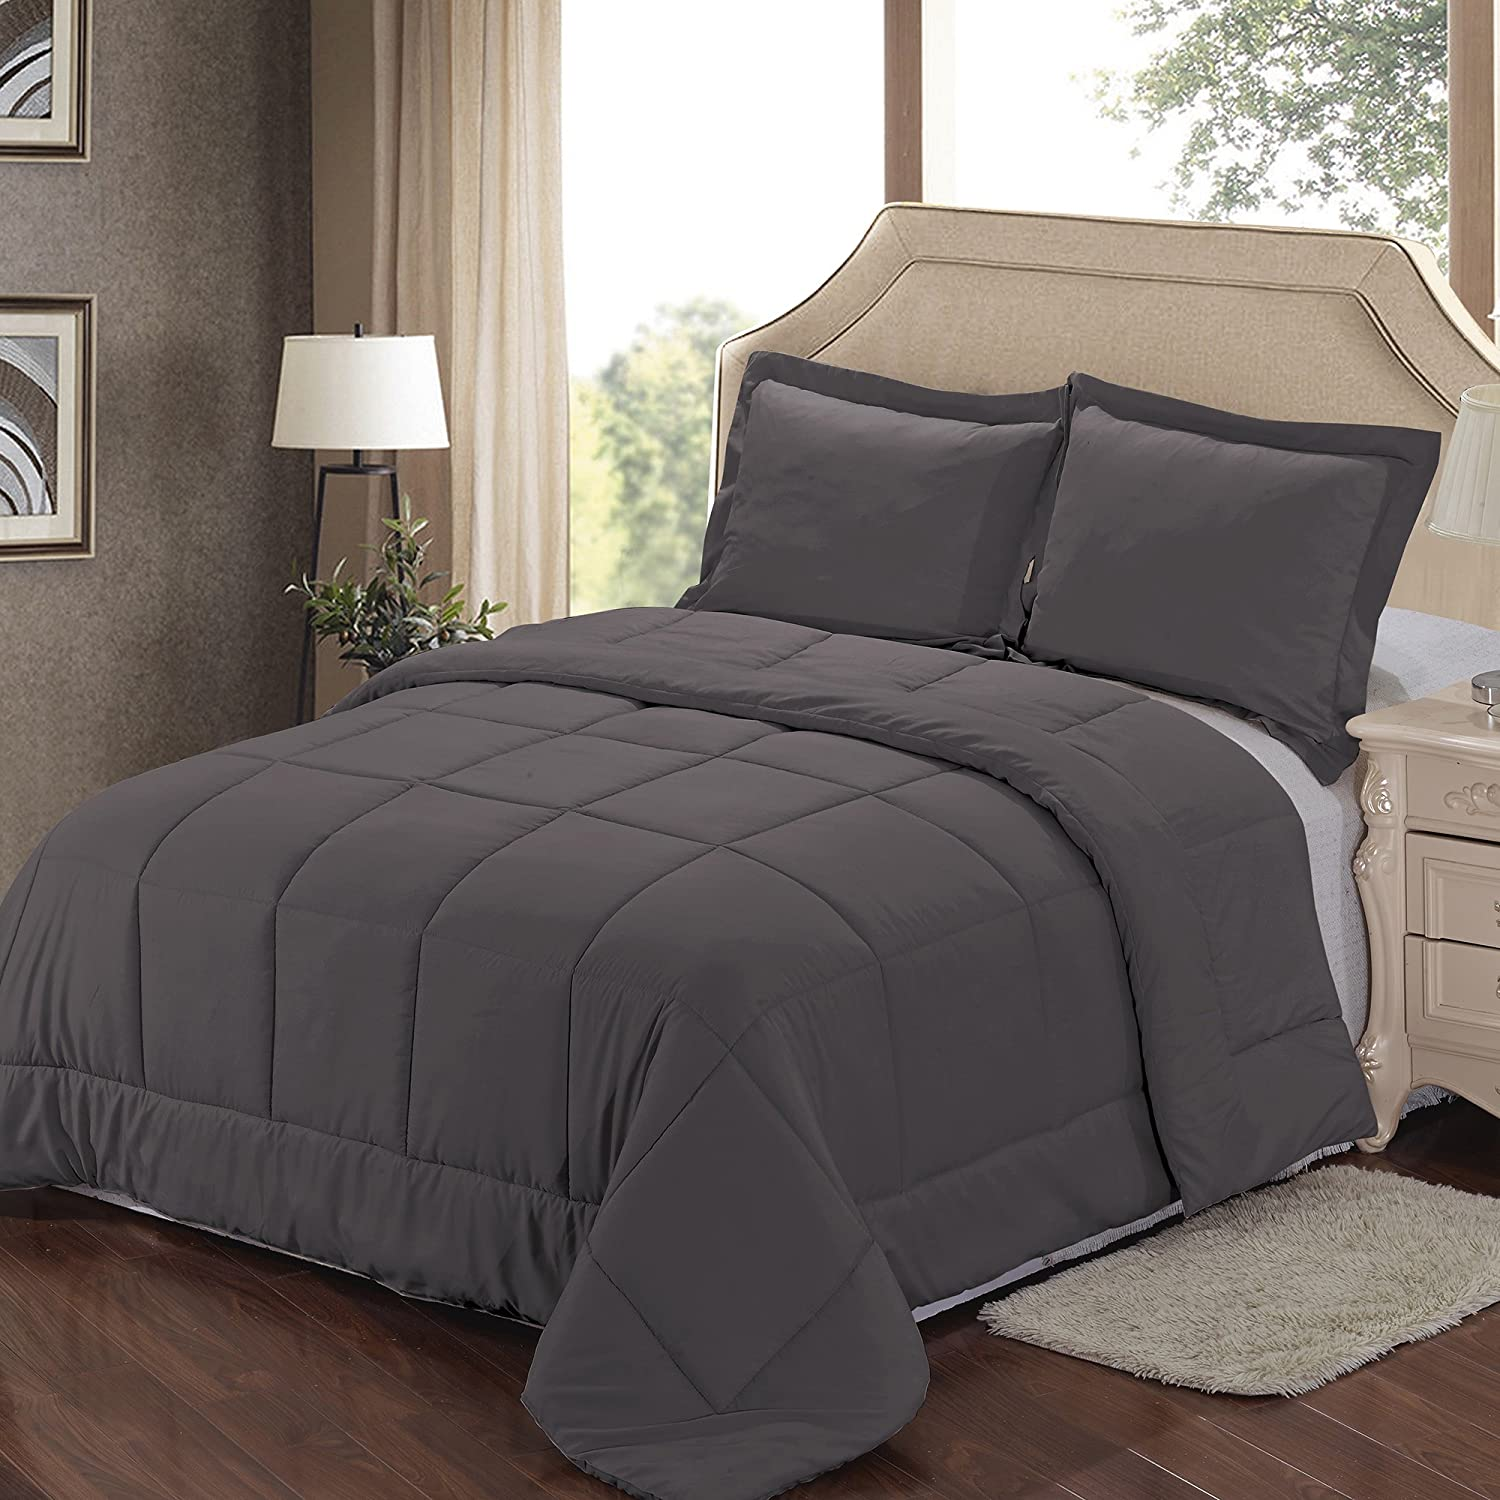 in flair warm size any washable microfiber durable highly sets cozy easy enhance design queen deluxe look burgundy with the cover modern filling extraordinary brown soft stylish dry grey elegant extra piece bedroom comforters beds colors set and for wash feel inspiring comforter of masculine to